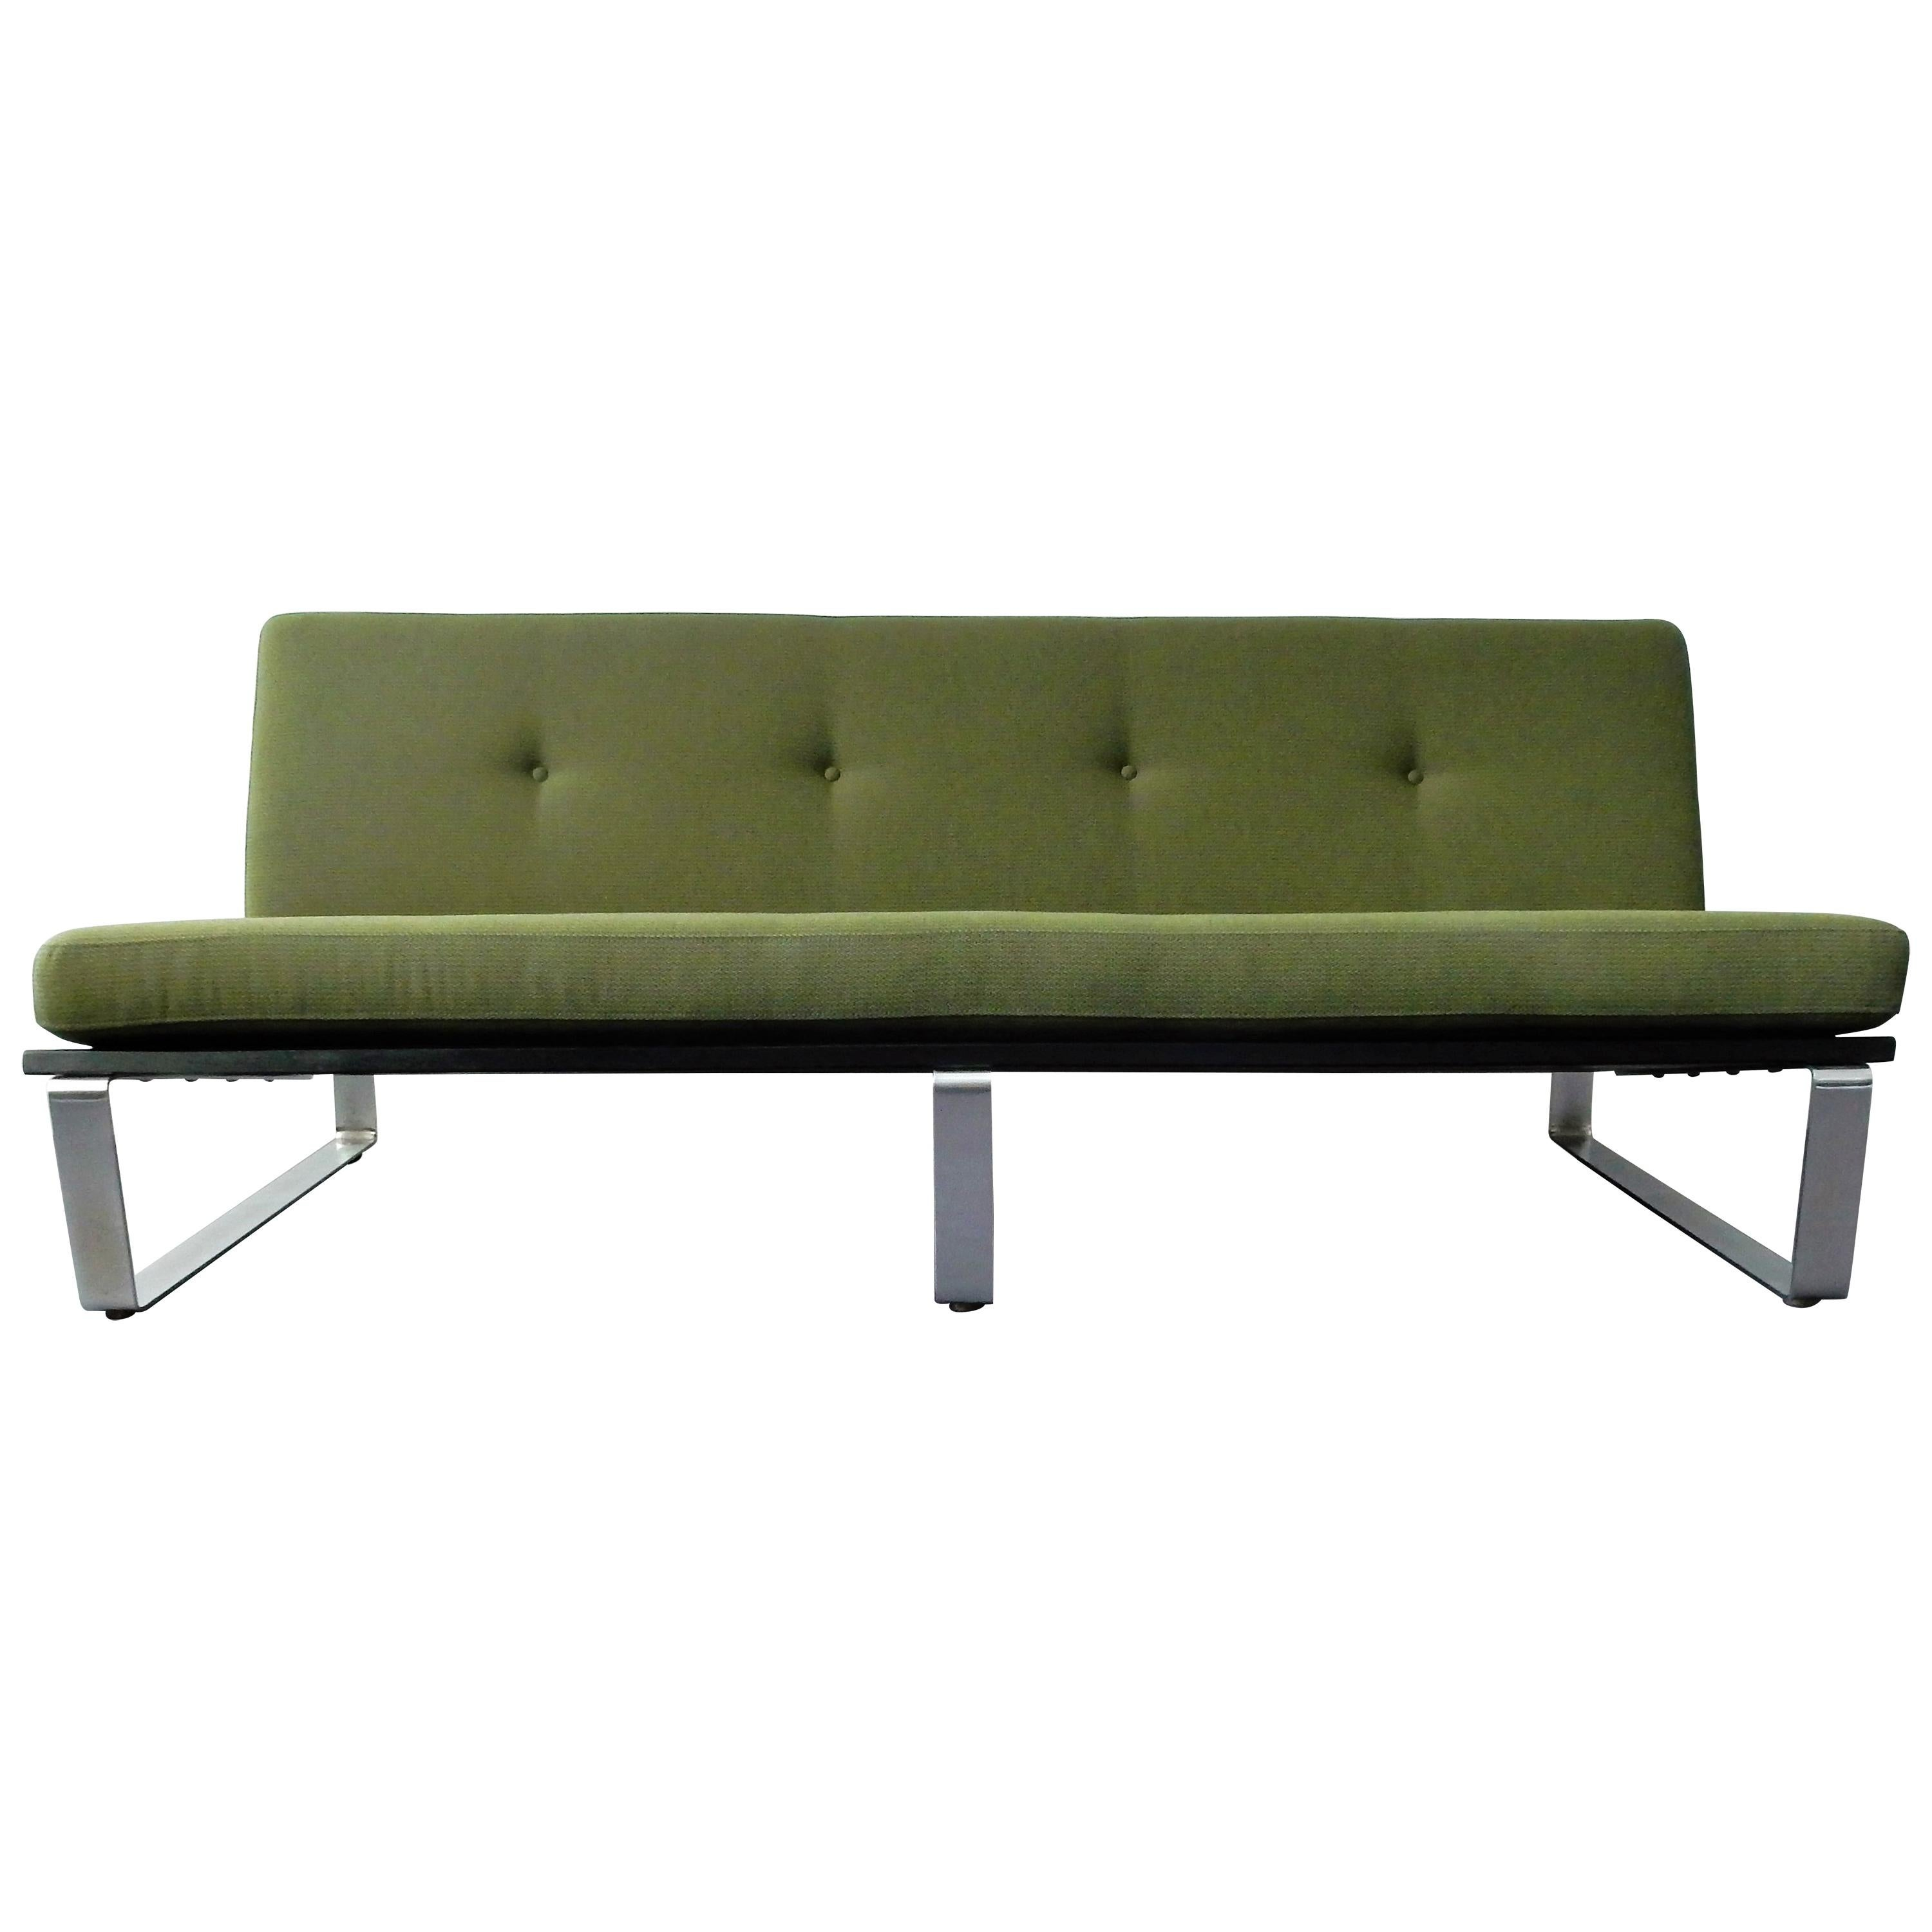 2,5-Seat Sofa by Kho Liang Ie for Artifort, 1962, with New De Ploeg Fabric